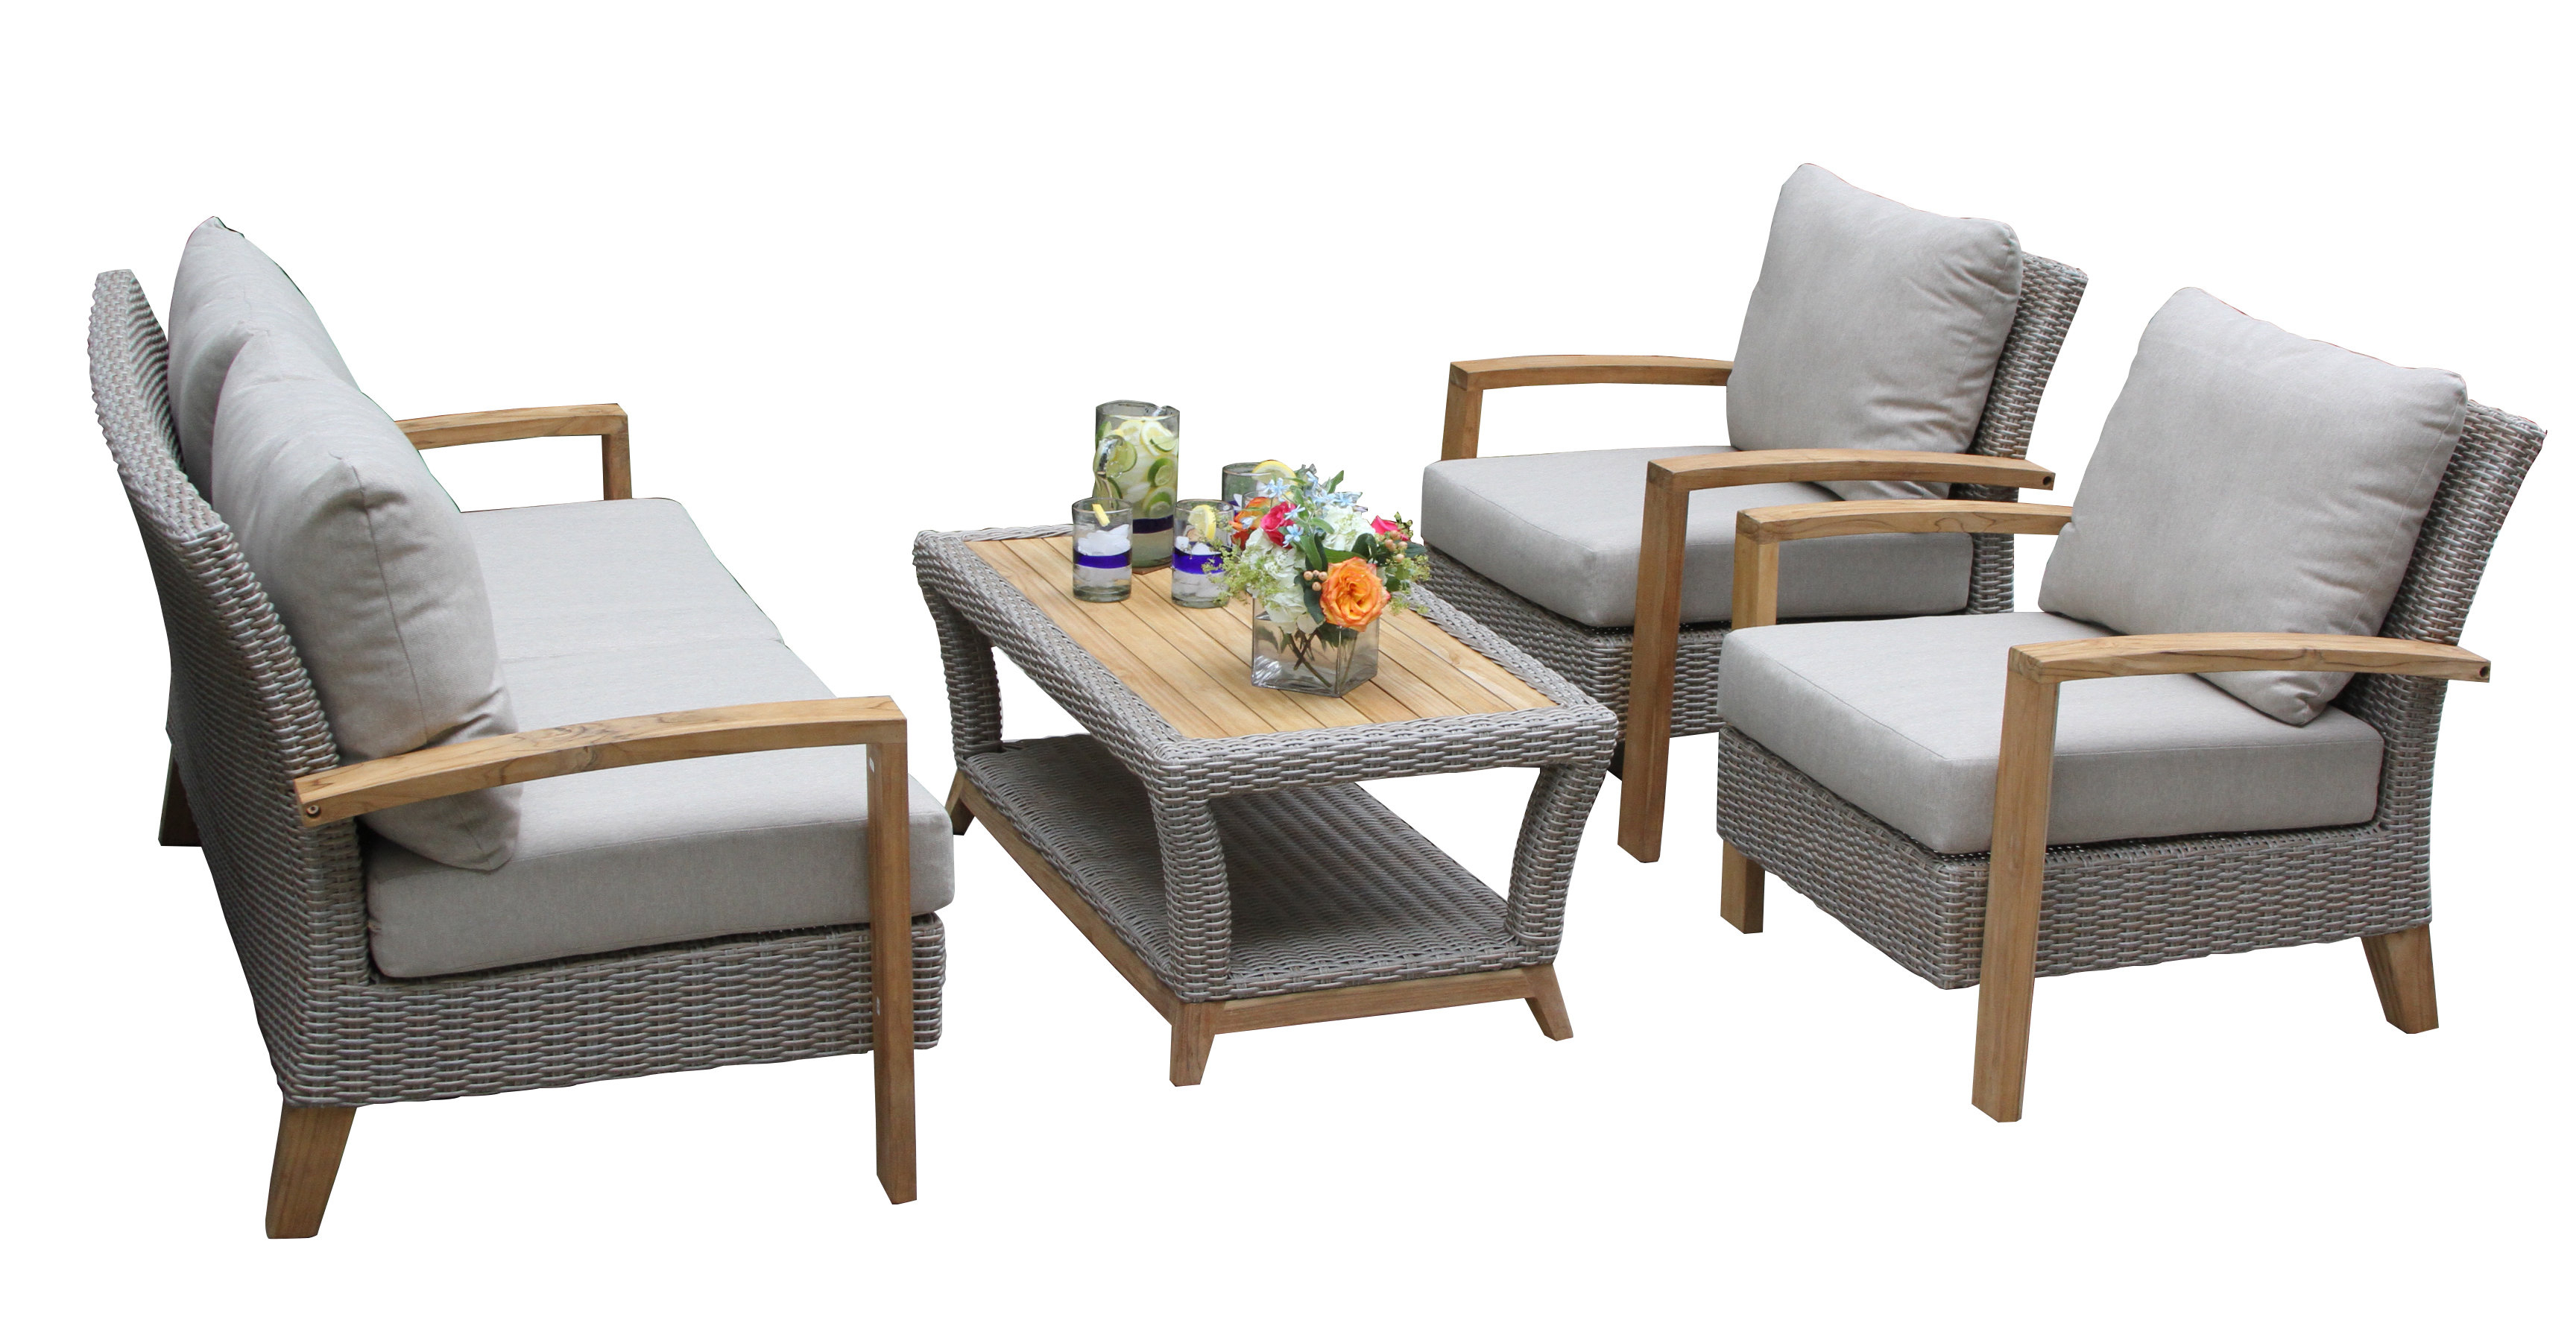 Dillard 4 Piece Rattan Sofa Seating Group With Cushions Intended For Favorite Elaina Cantilever Umbrellas (View 4 of 20)